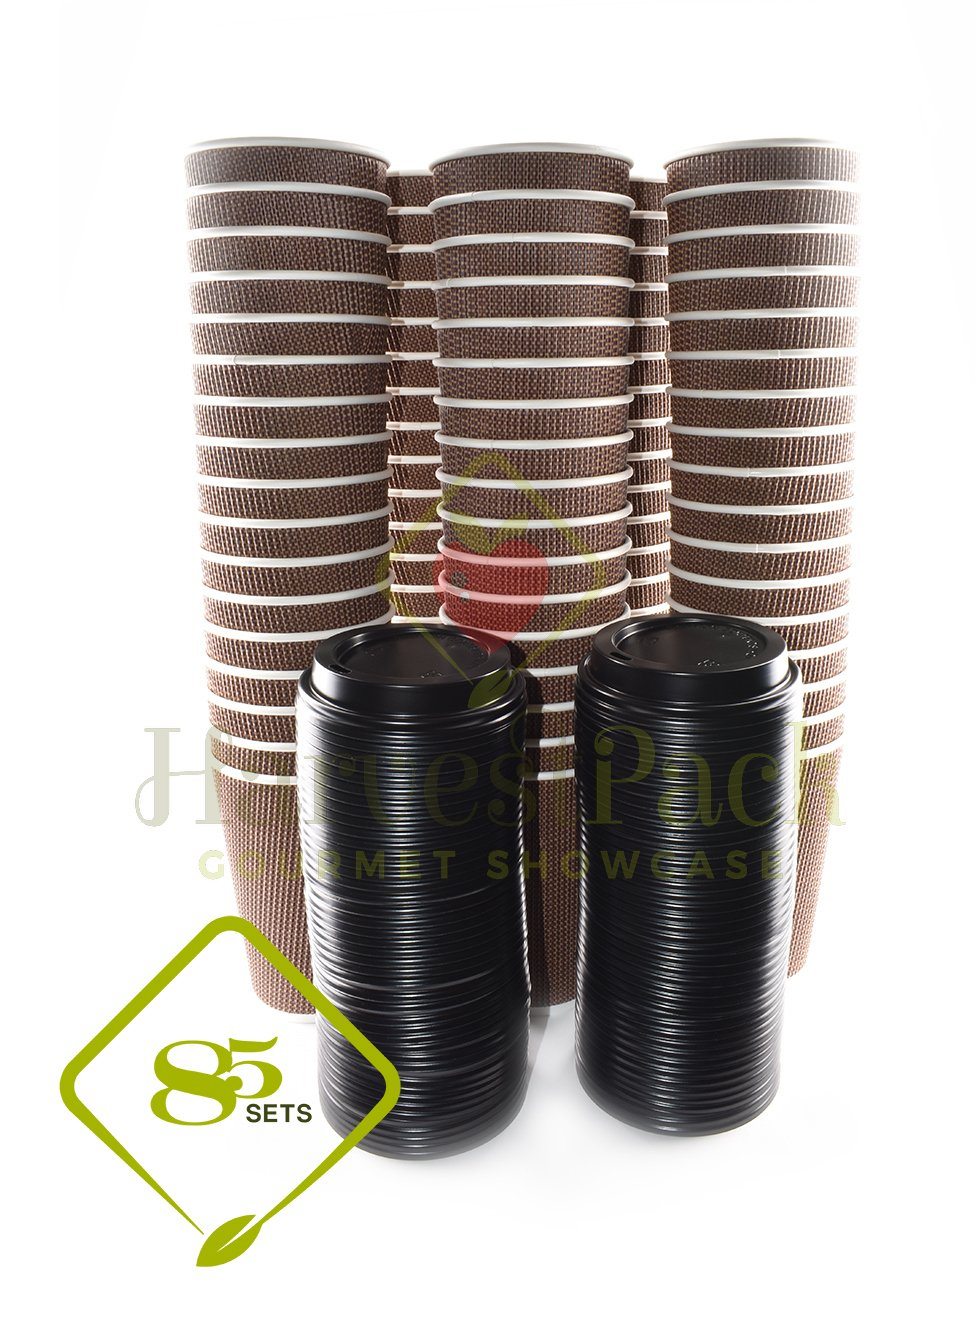 [85 COUNT] 16 oz Disposable Double Walled Hot Cups with Lids - No Sleeves needed Premium Insulated Ripple Wall Hot Coffee Tea Chocolate Drinks Perfect Travel To Go Paper Cup and lid Brown Geometric